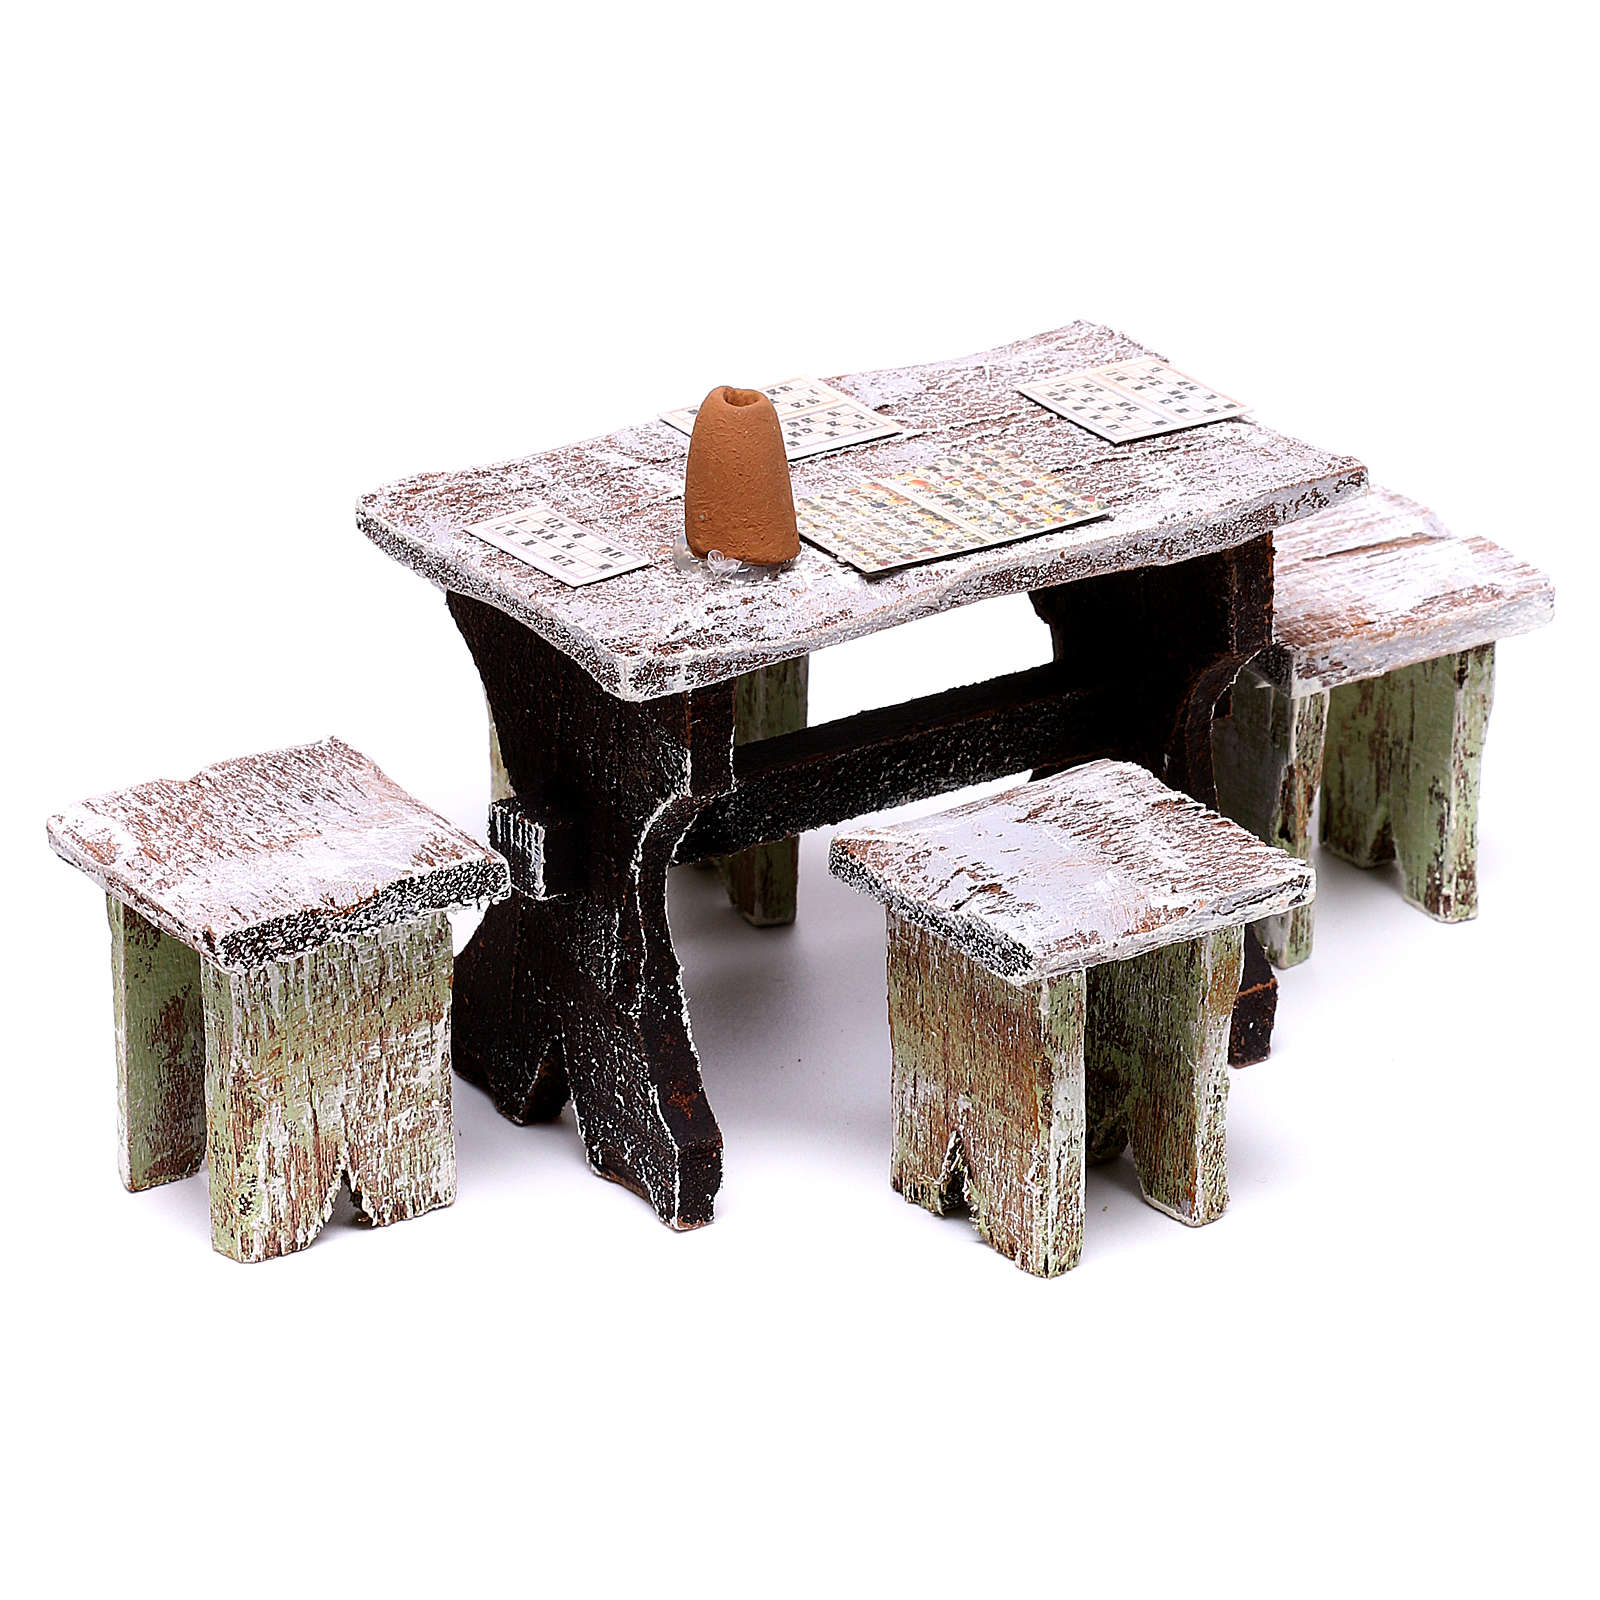 Bingo table and stools of 5x5x5 cm for Nativity scene of 12 cm 4